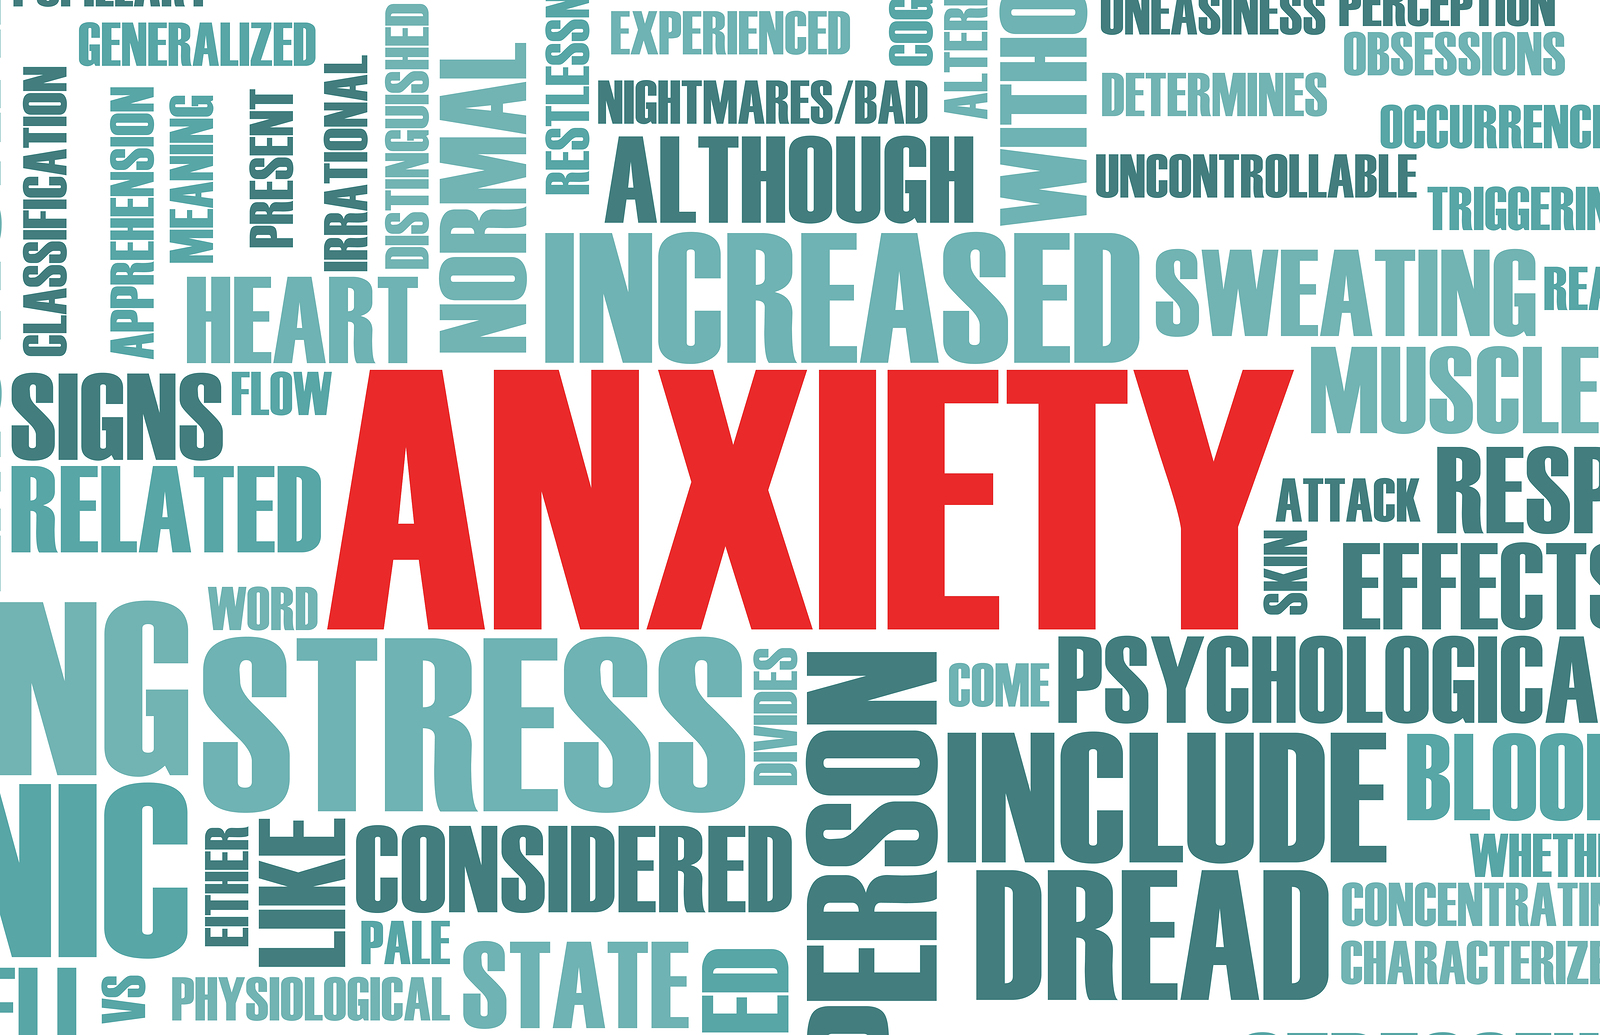 bigstock-Anxiety-and-Stress-and-its-Des-20348060.jpg